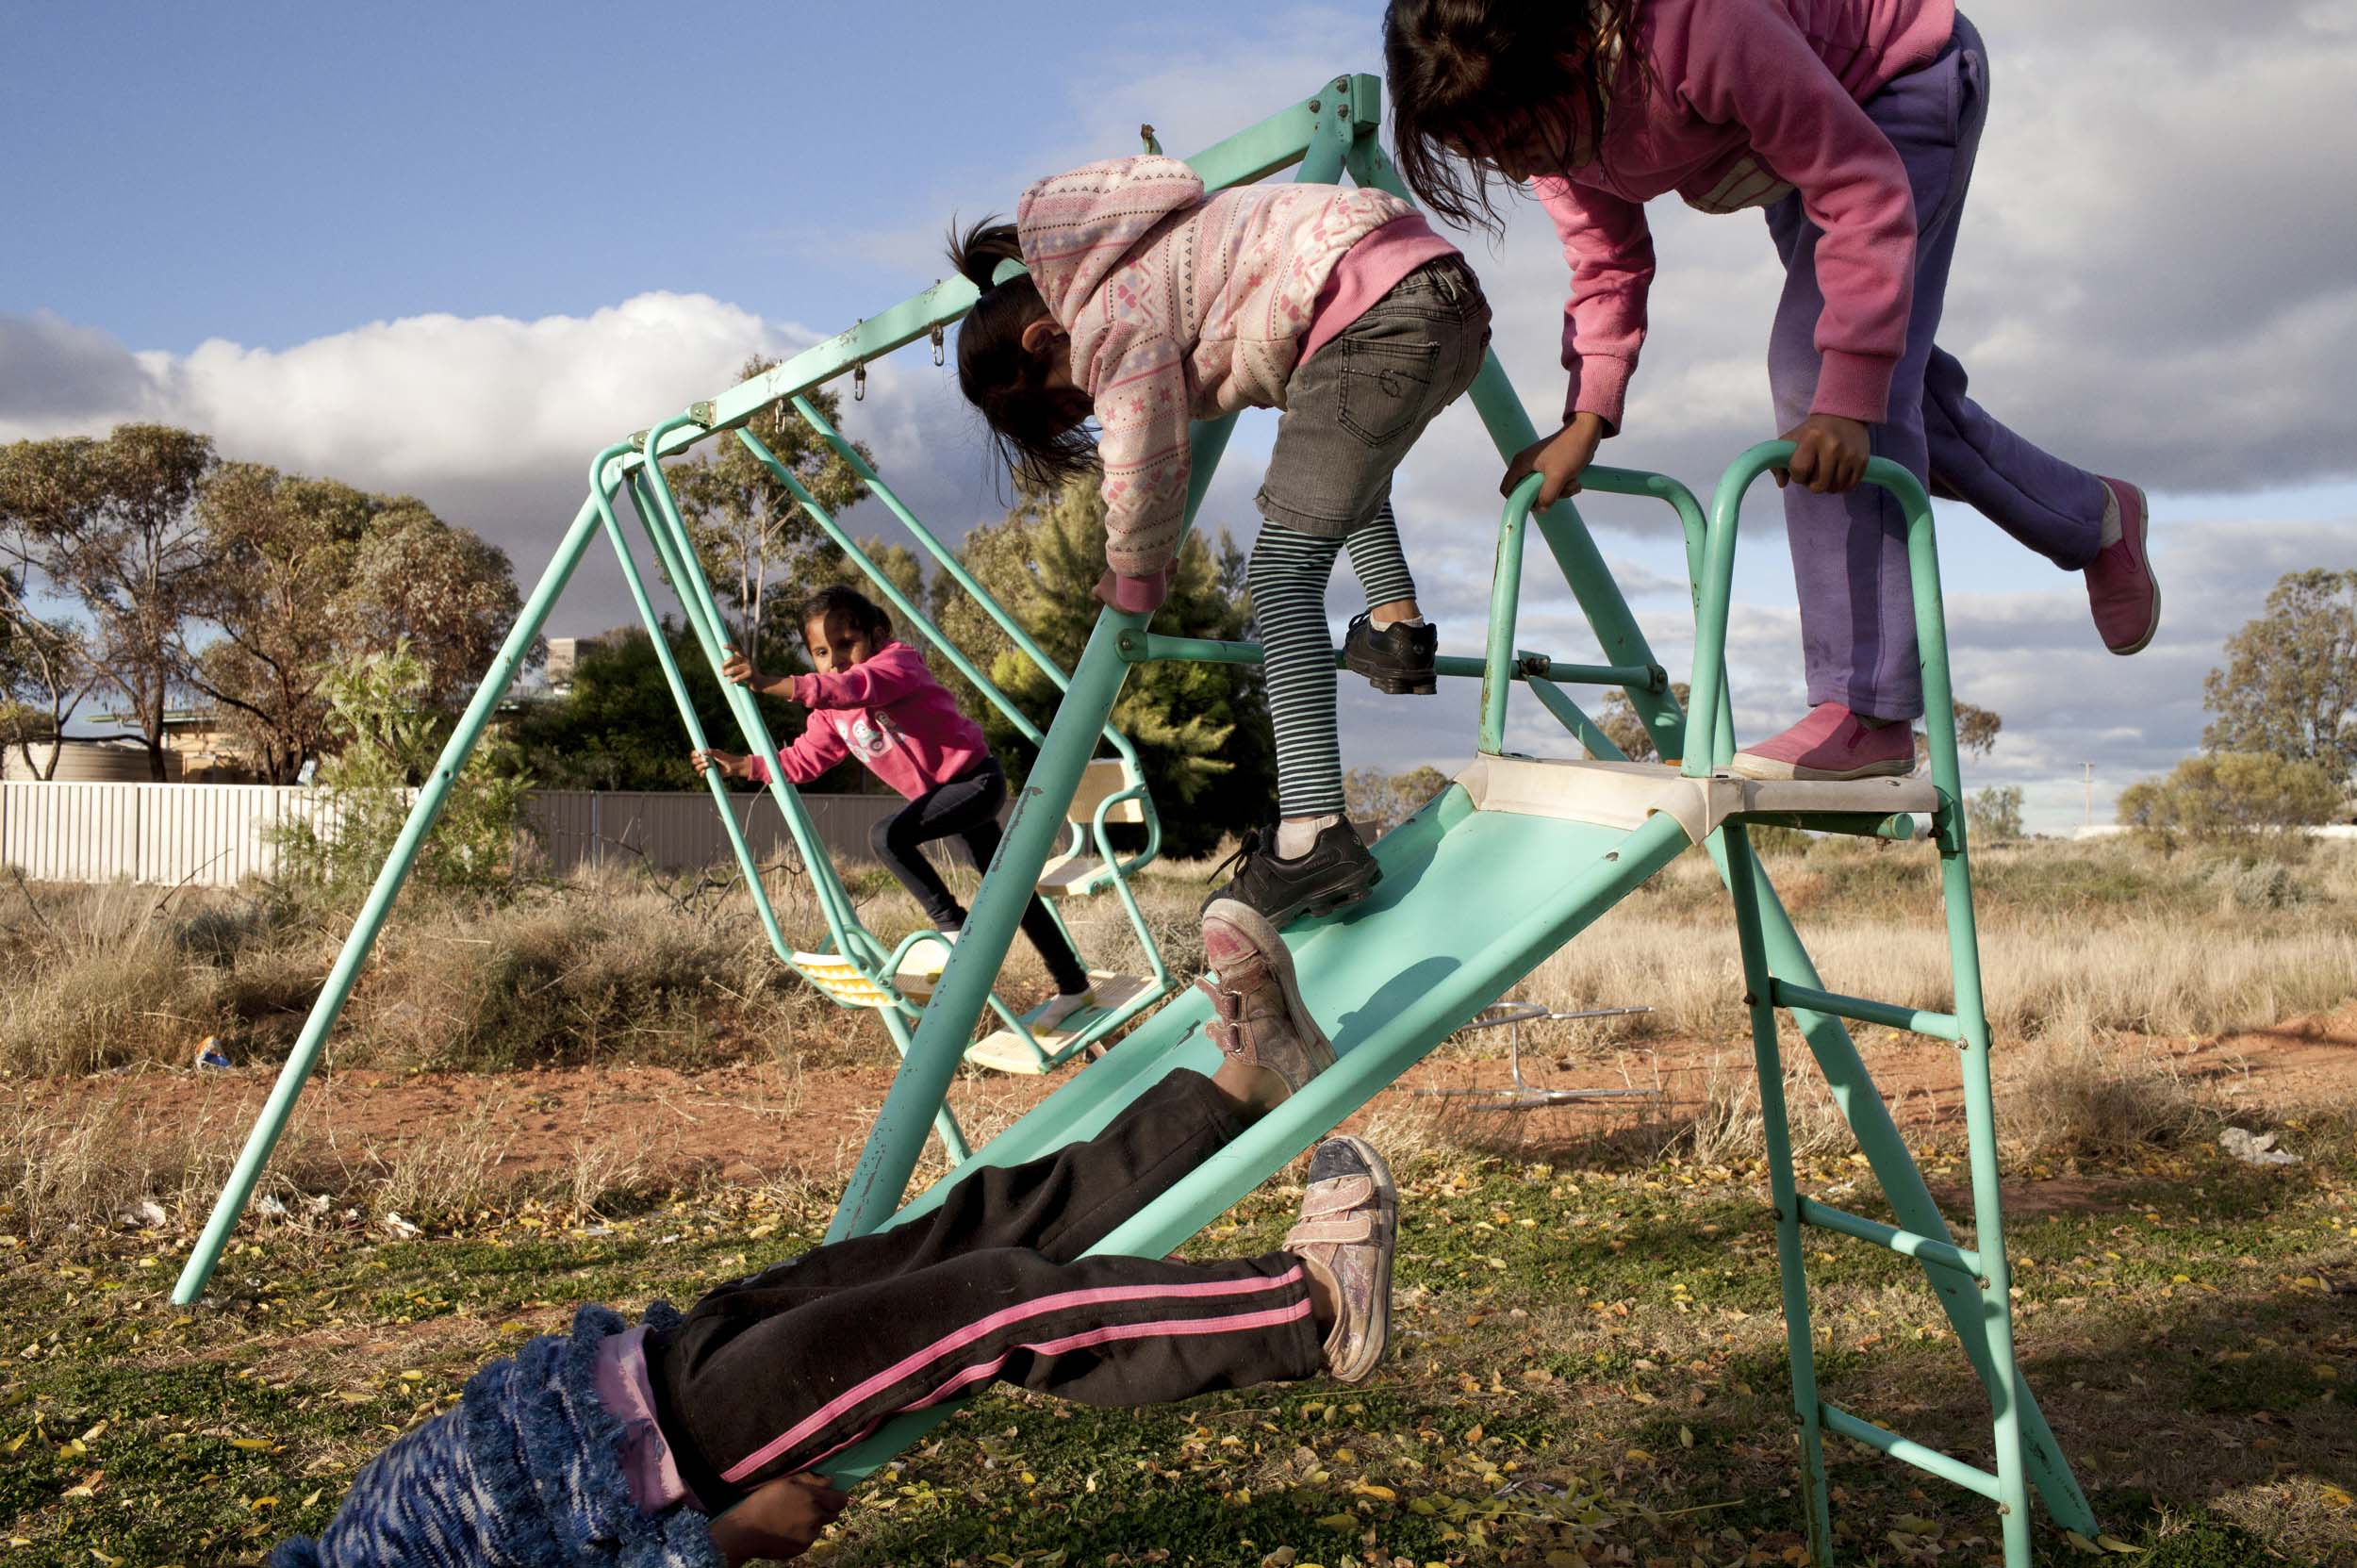 Children at play in Wilcannia, NSW.